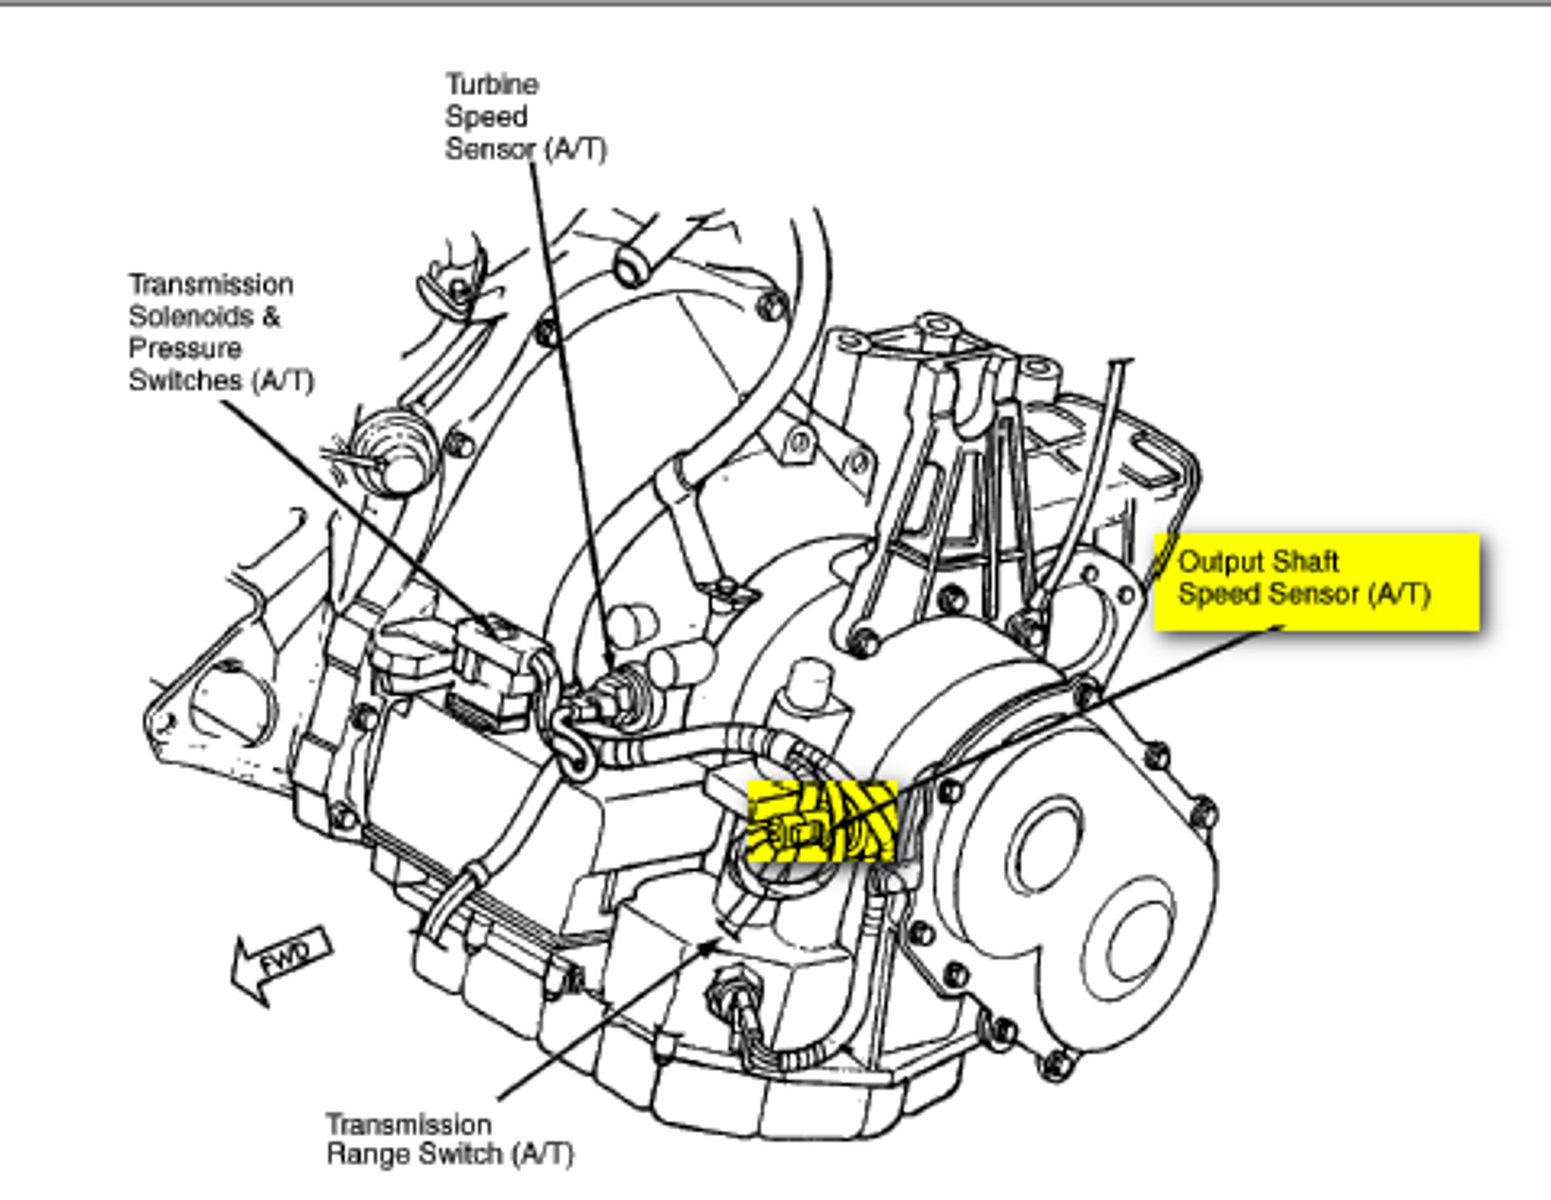 2003 Dodge Stratus Engine Diagram General Data Wiring Caravan Questions Need To Get The Format On Where Transmission Sensor Are Located Parts Breakdown